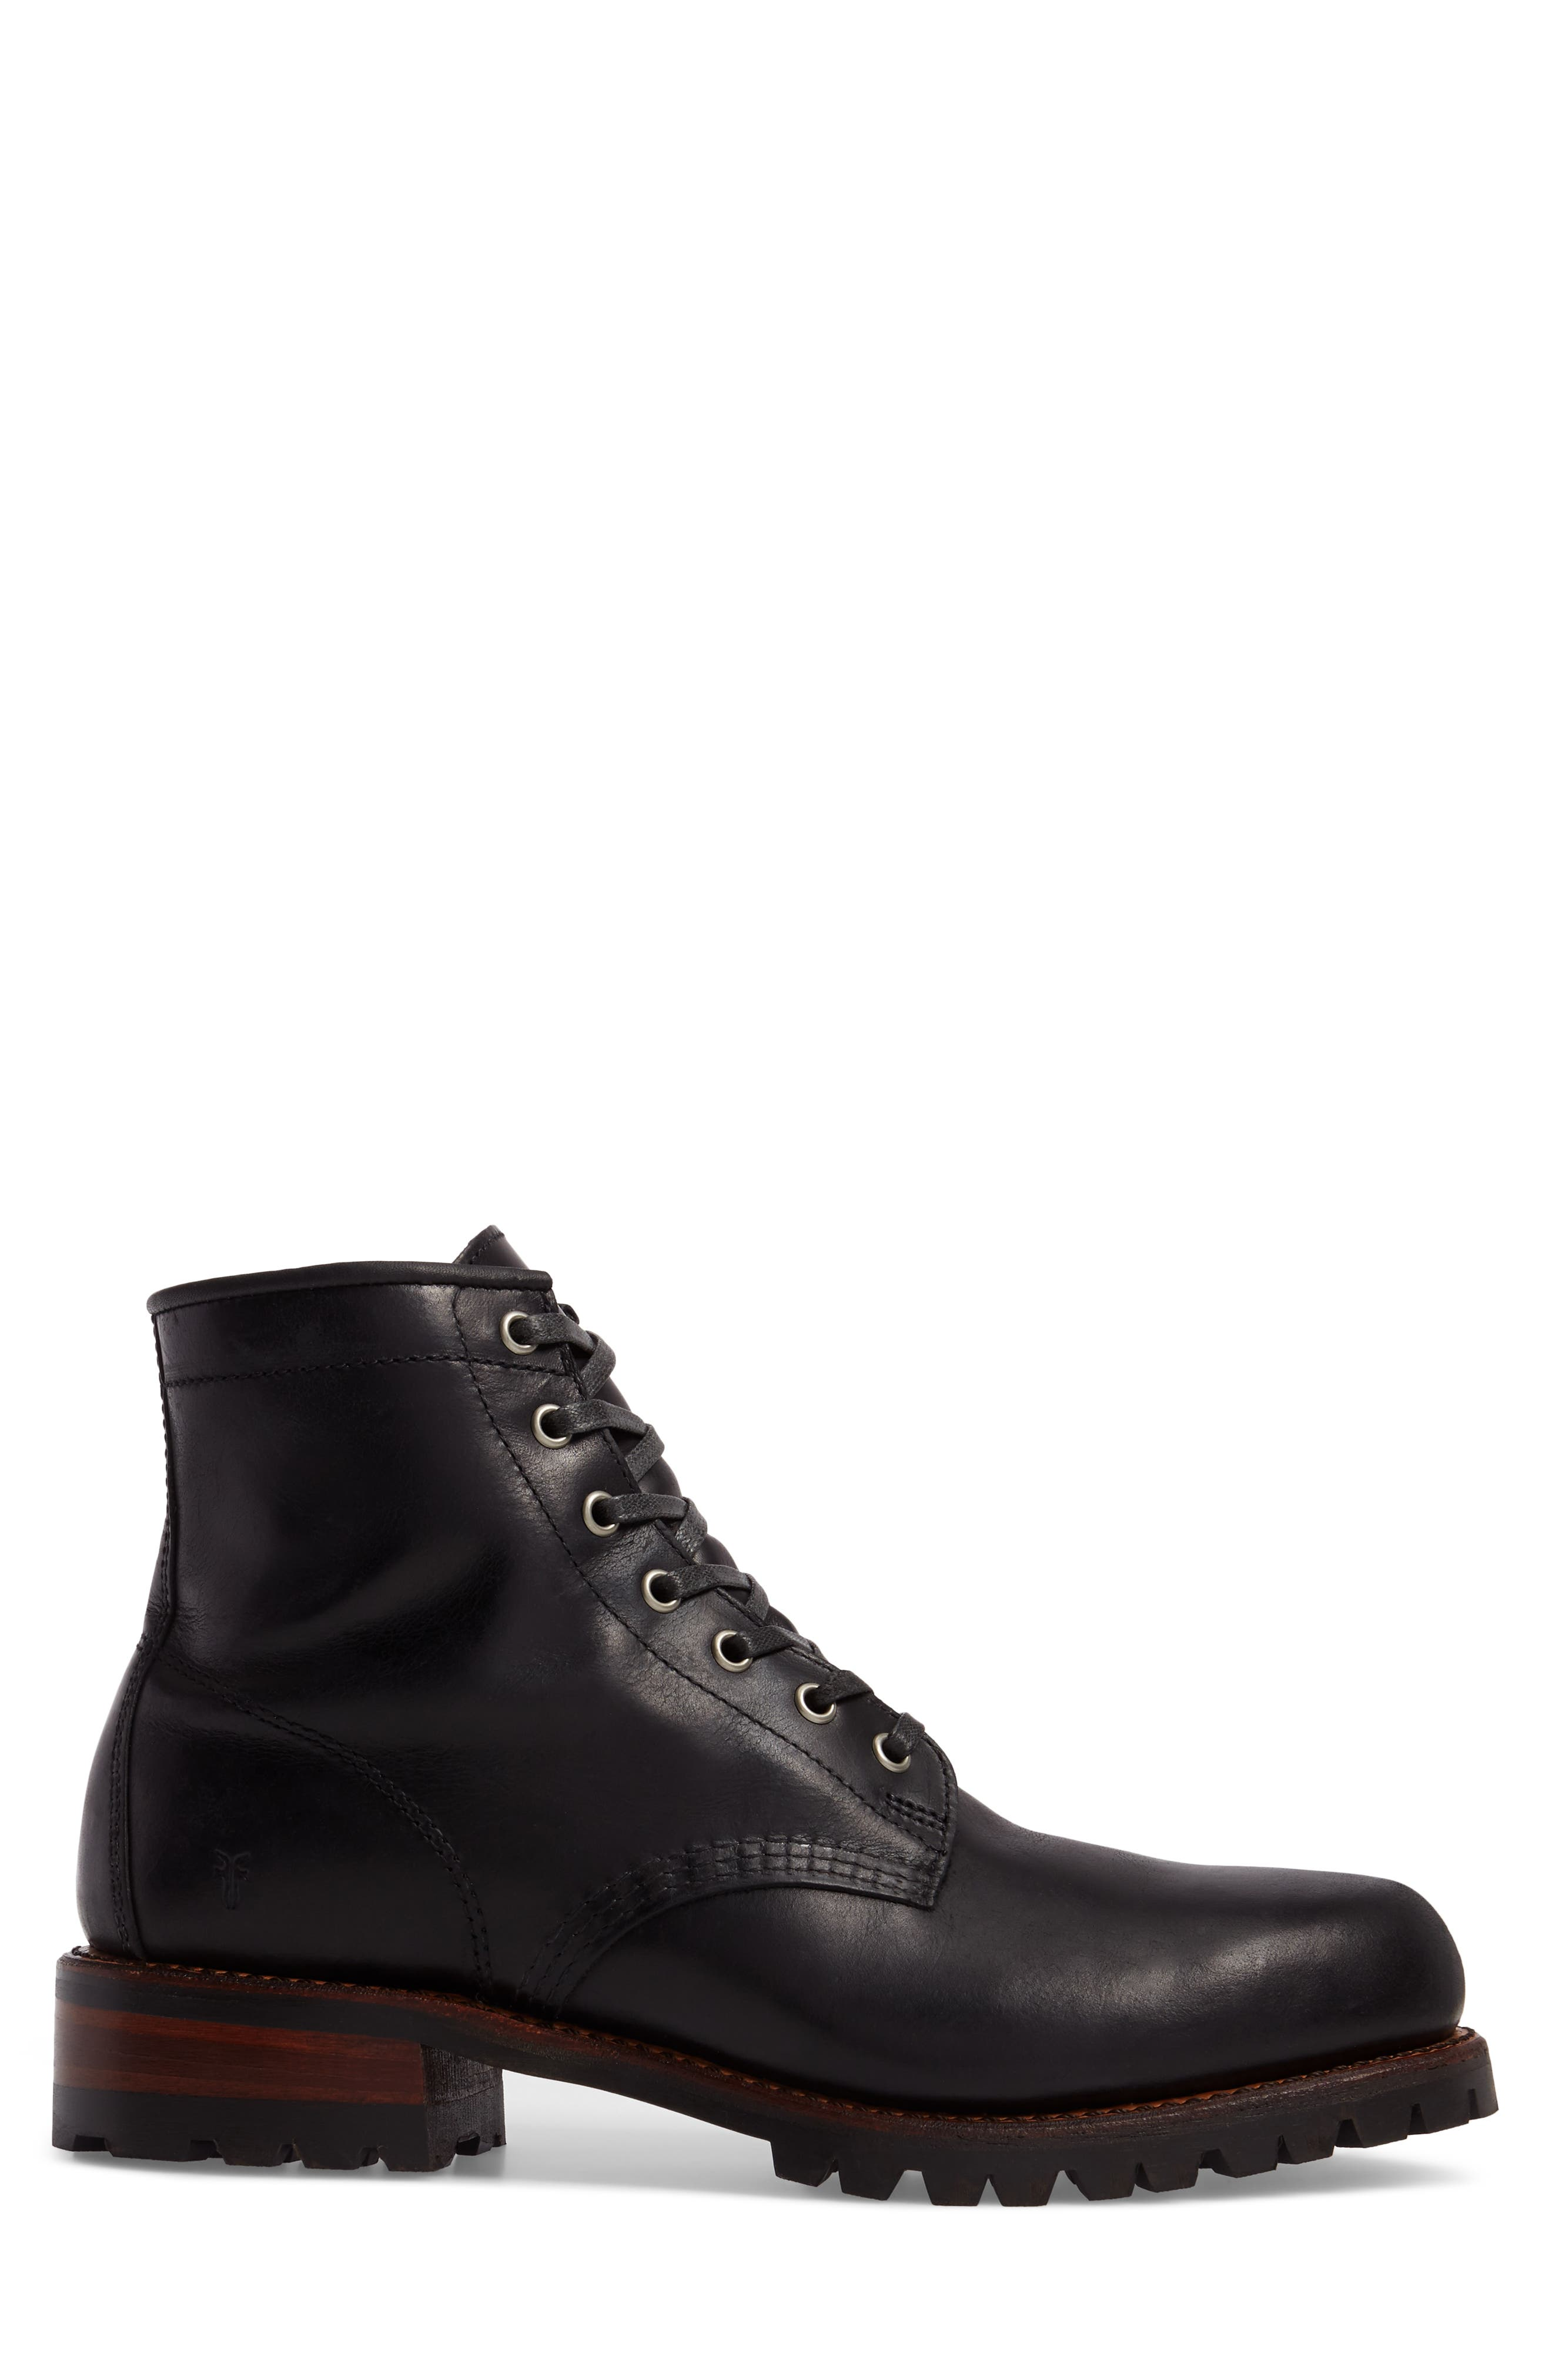 Addison Lace-Up Boot,                             Alternate thumbnail 3, color,                             001